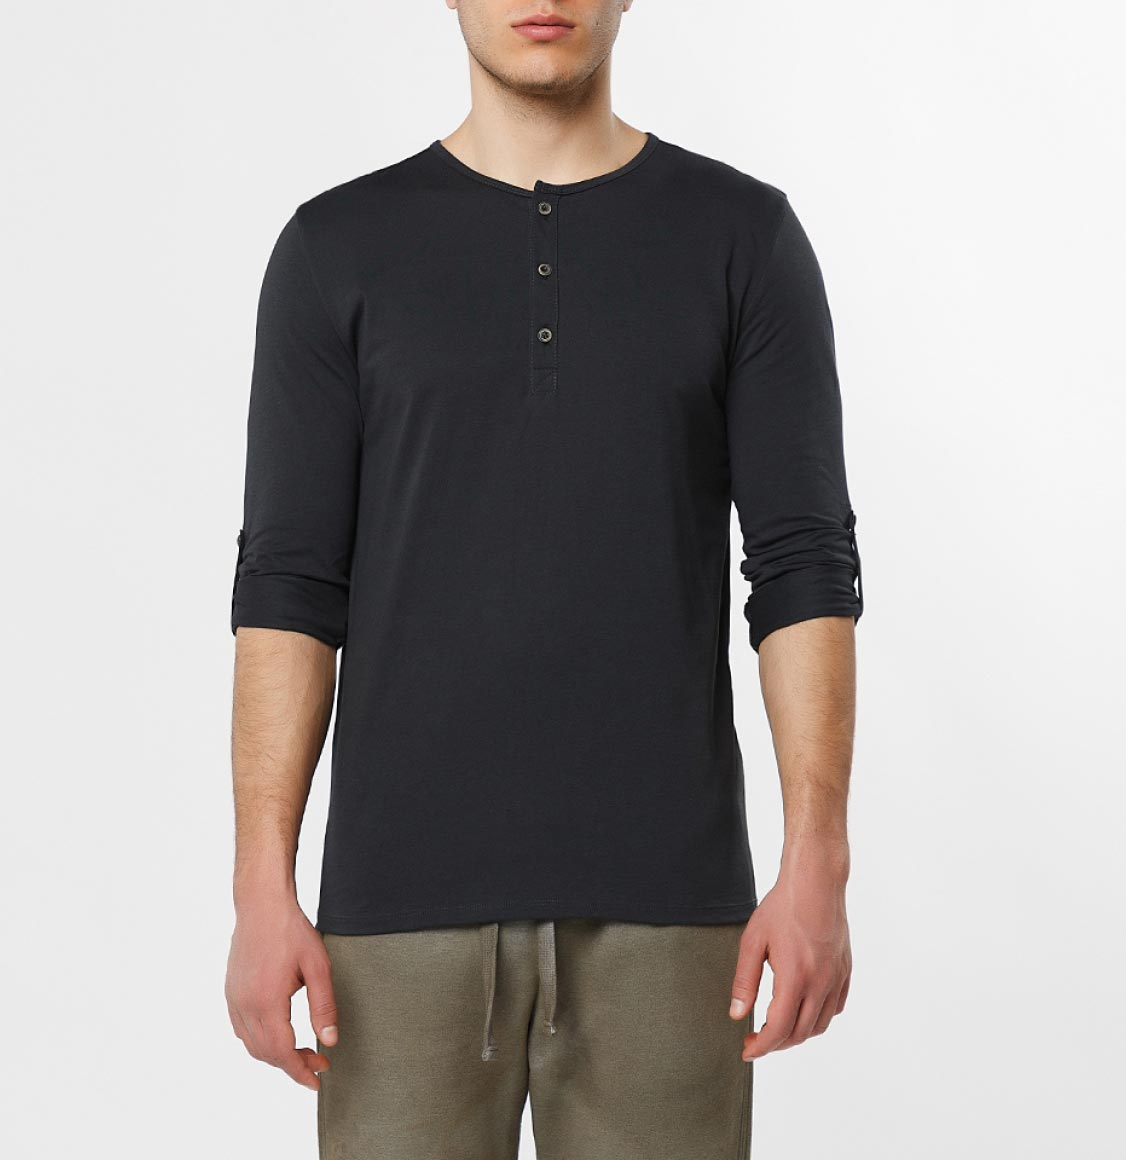 The Project Garments Henley Organic Cotton Long Sleeve T-shirt Charcoal Grey